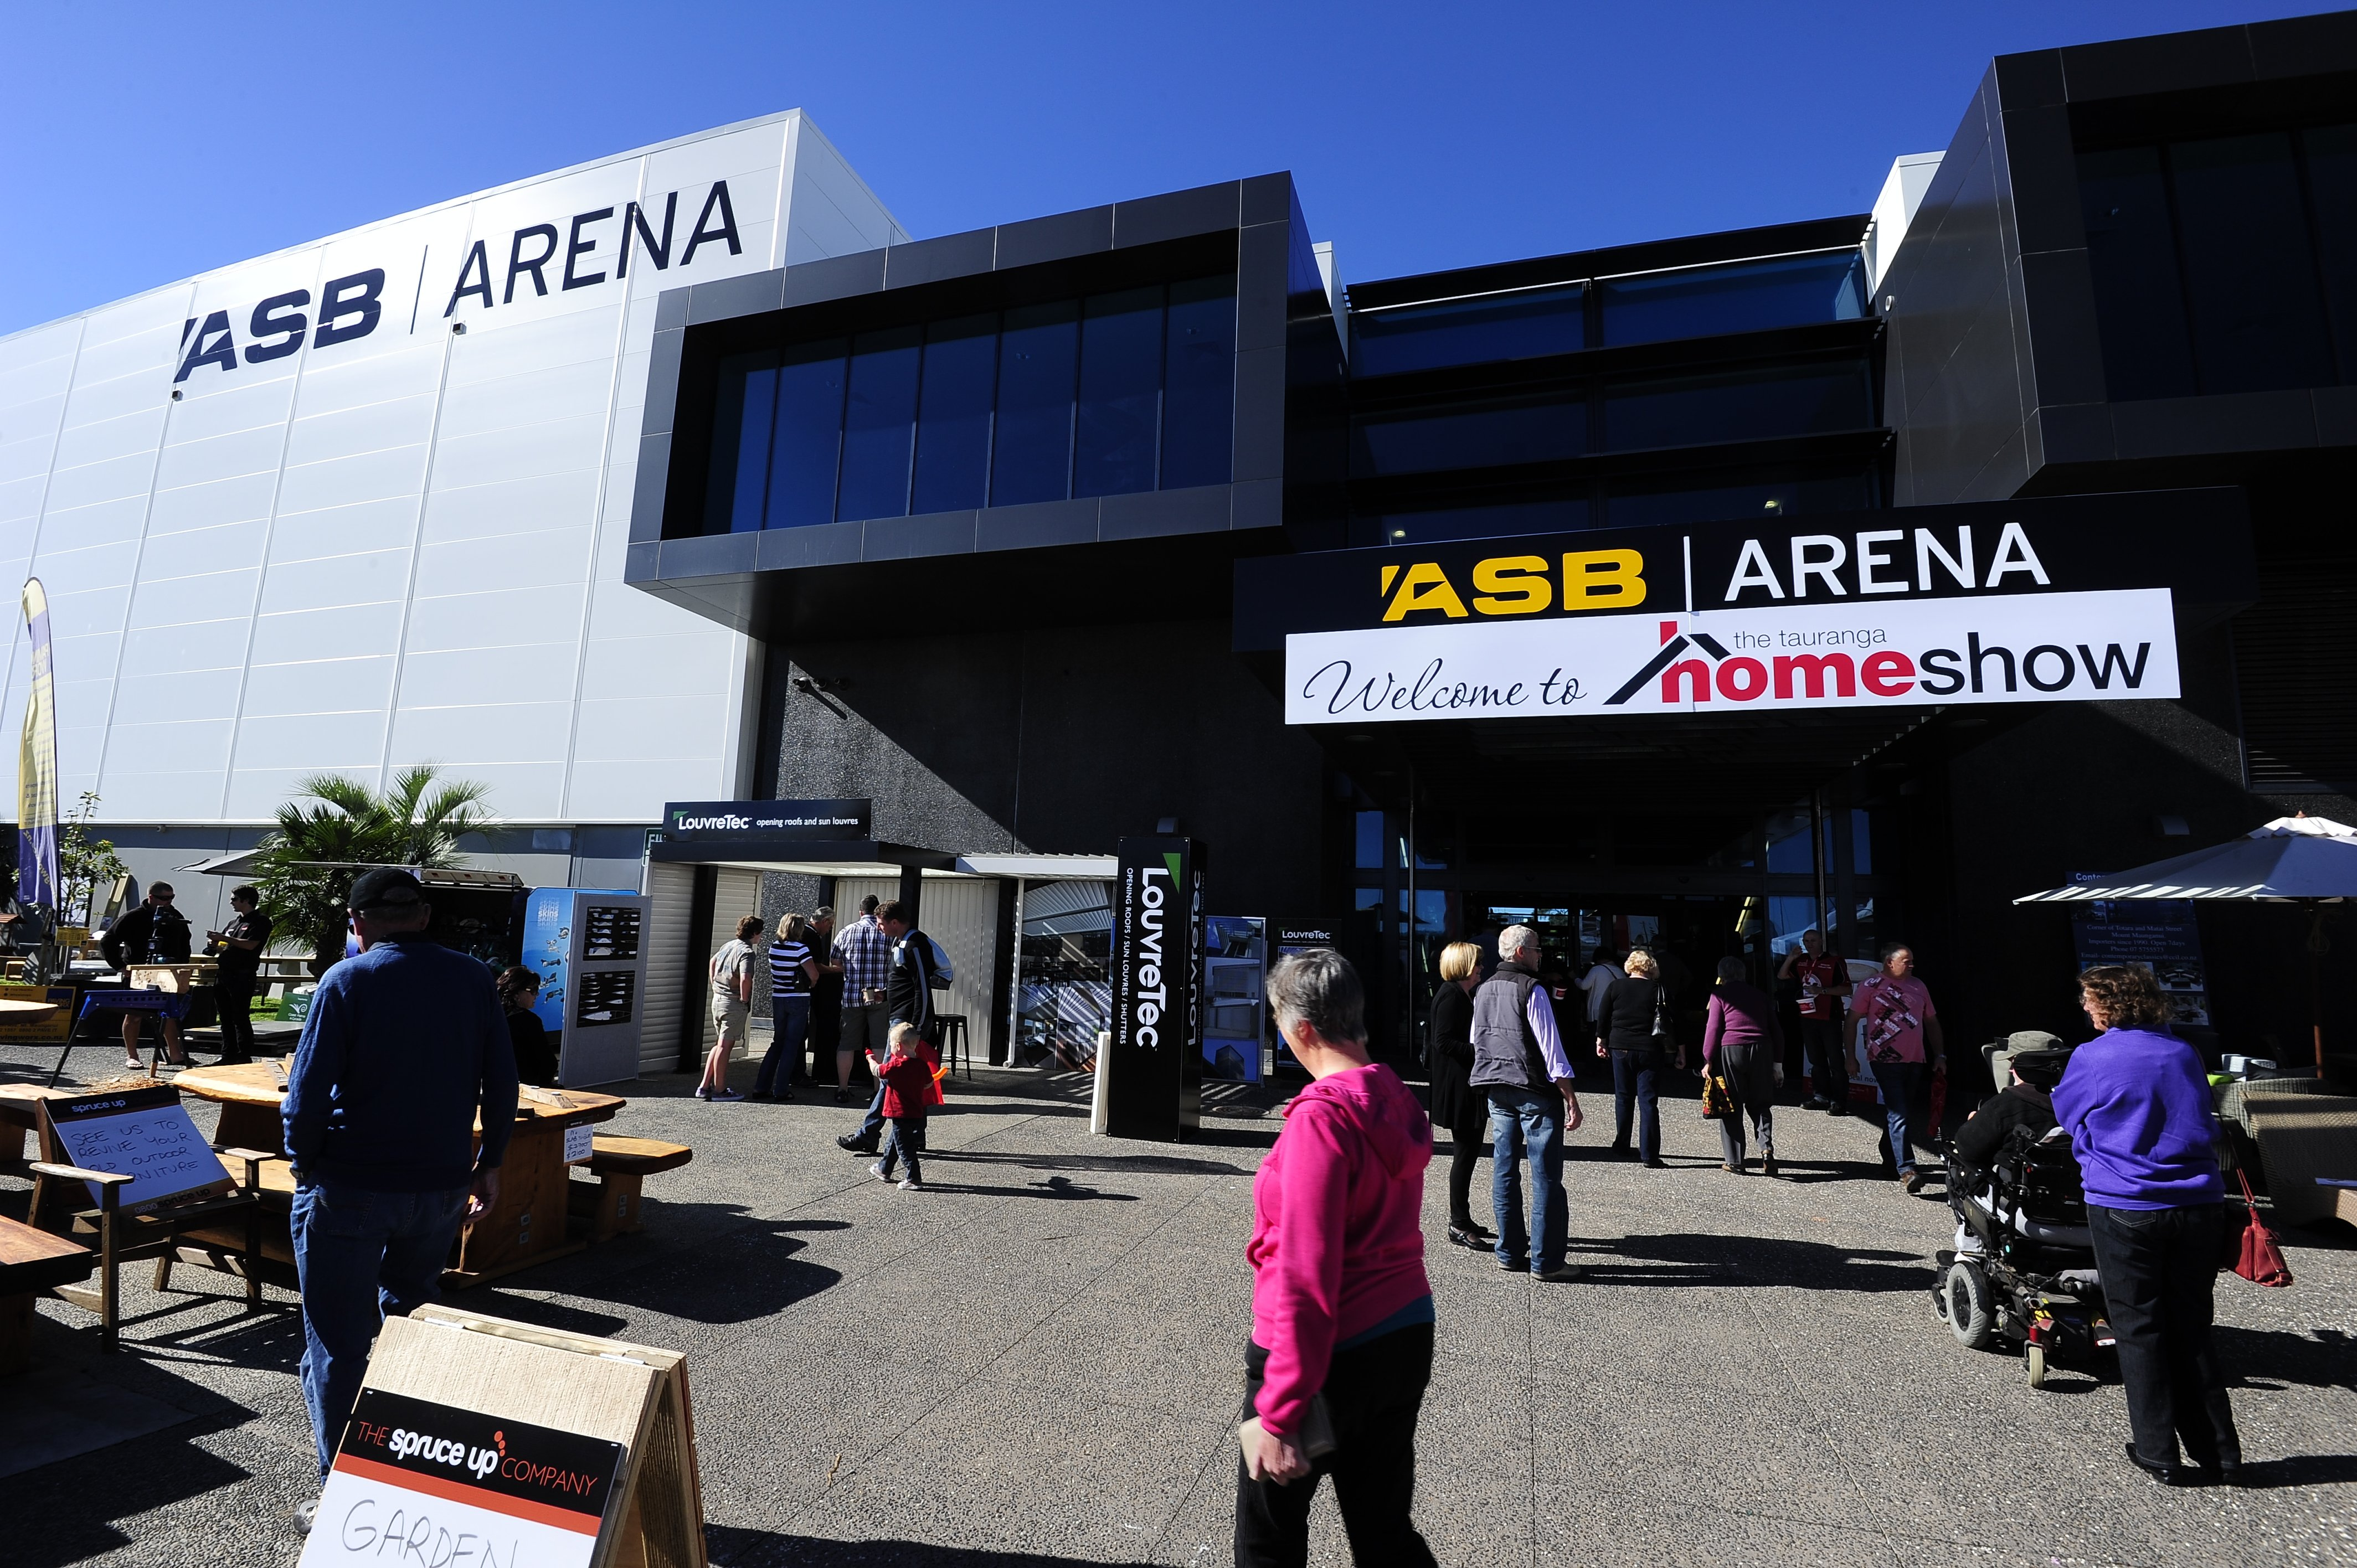 ASB Arena packed with events for summer - NZ Herald